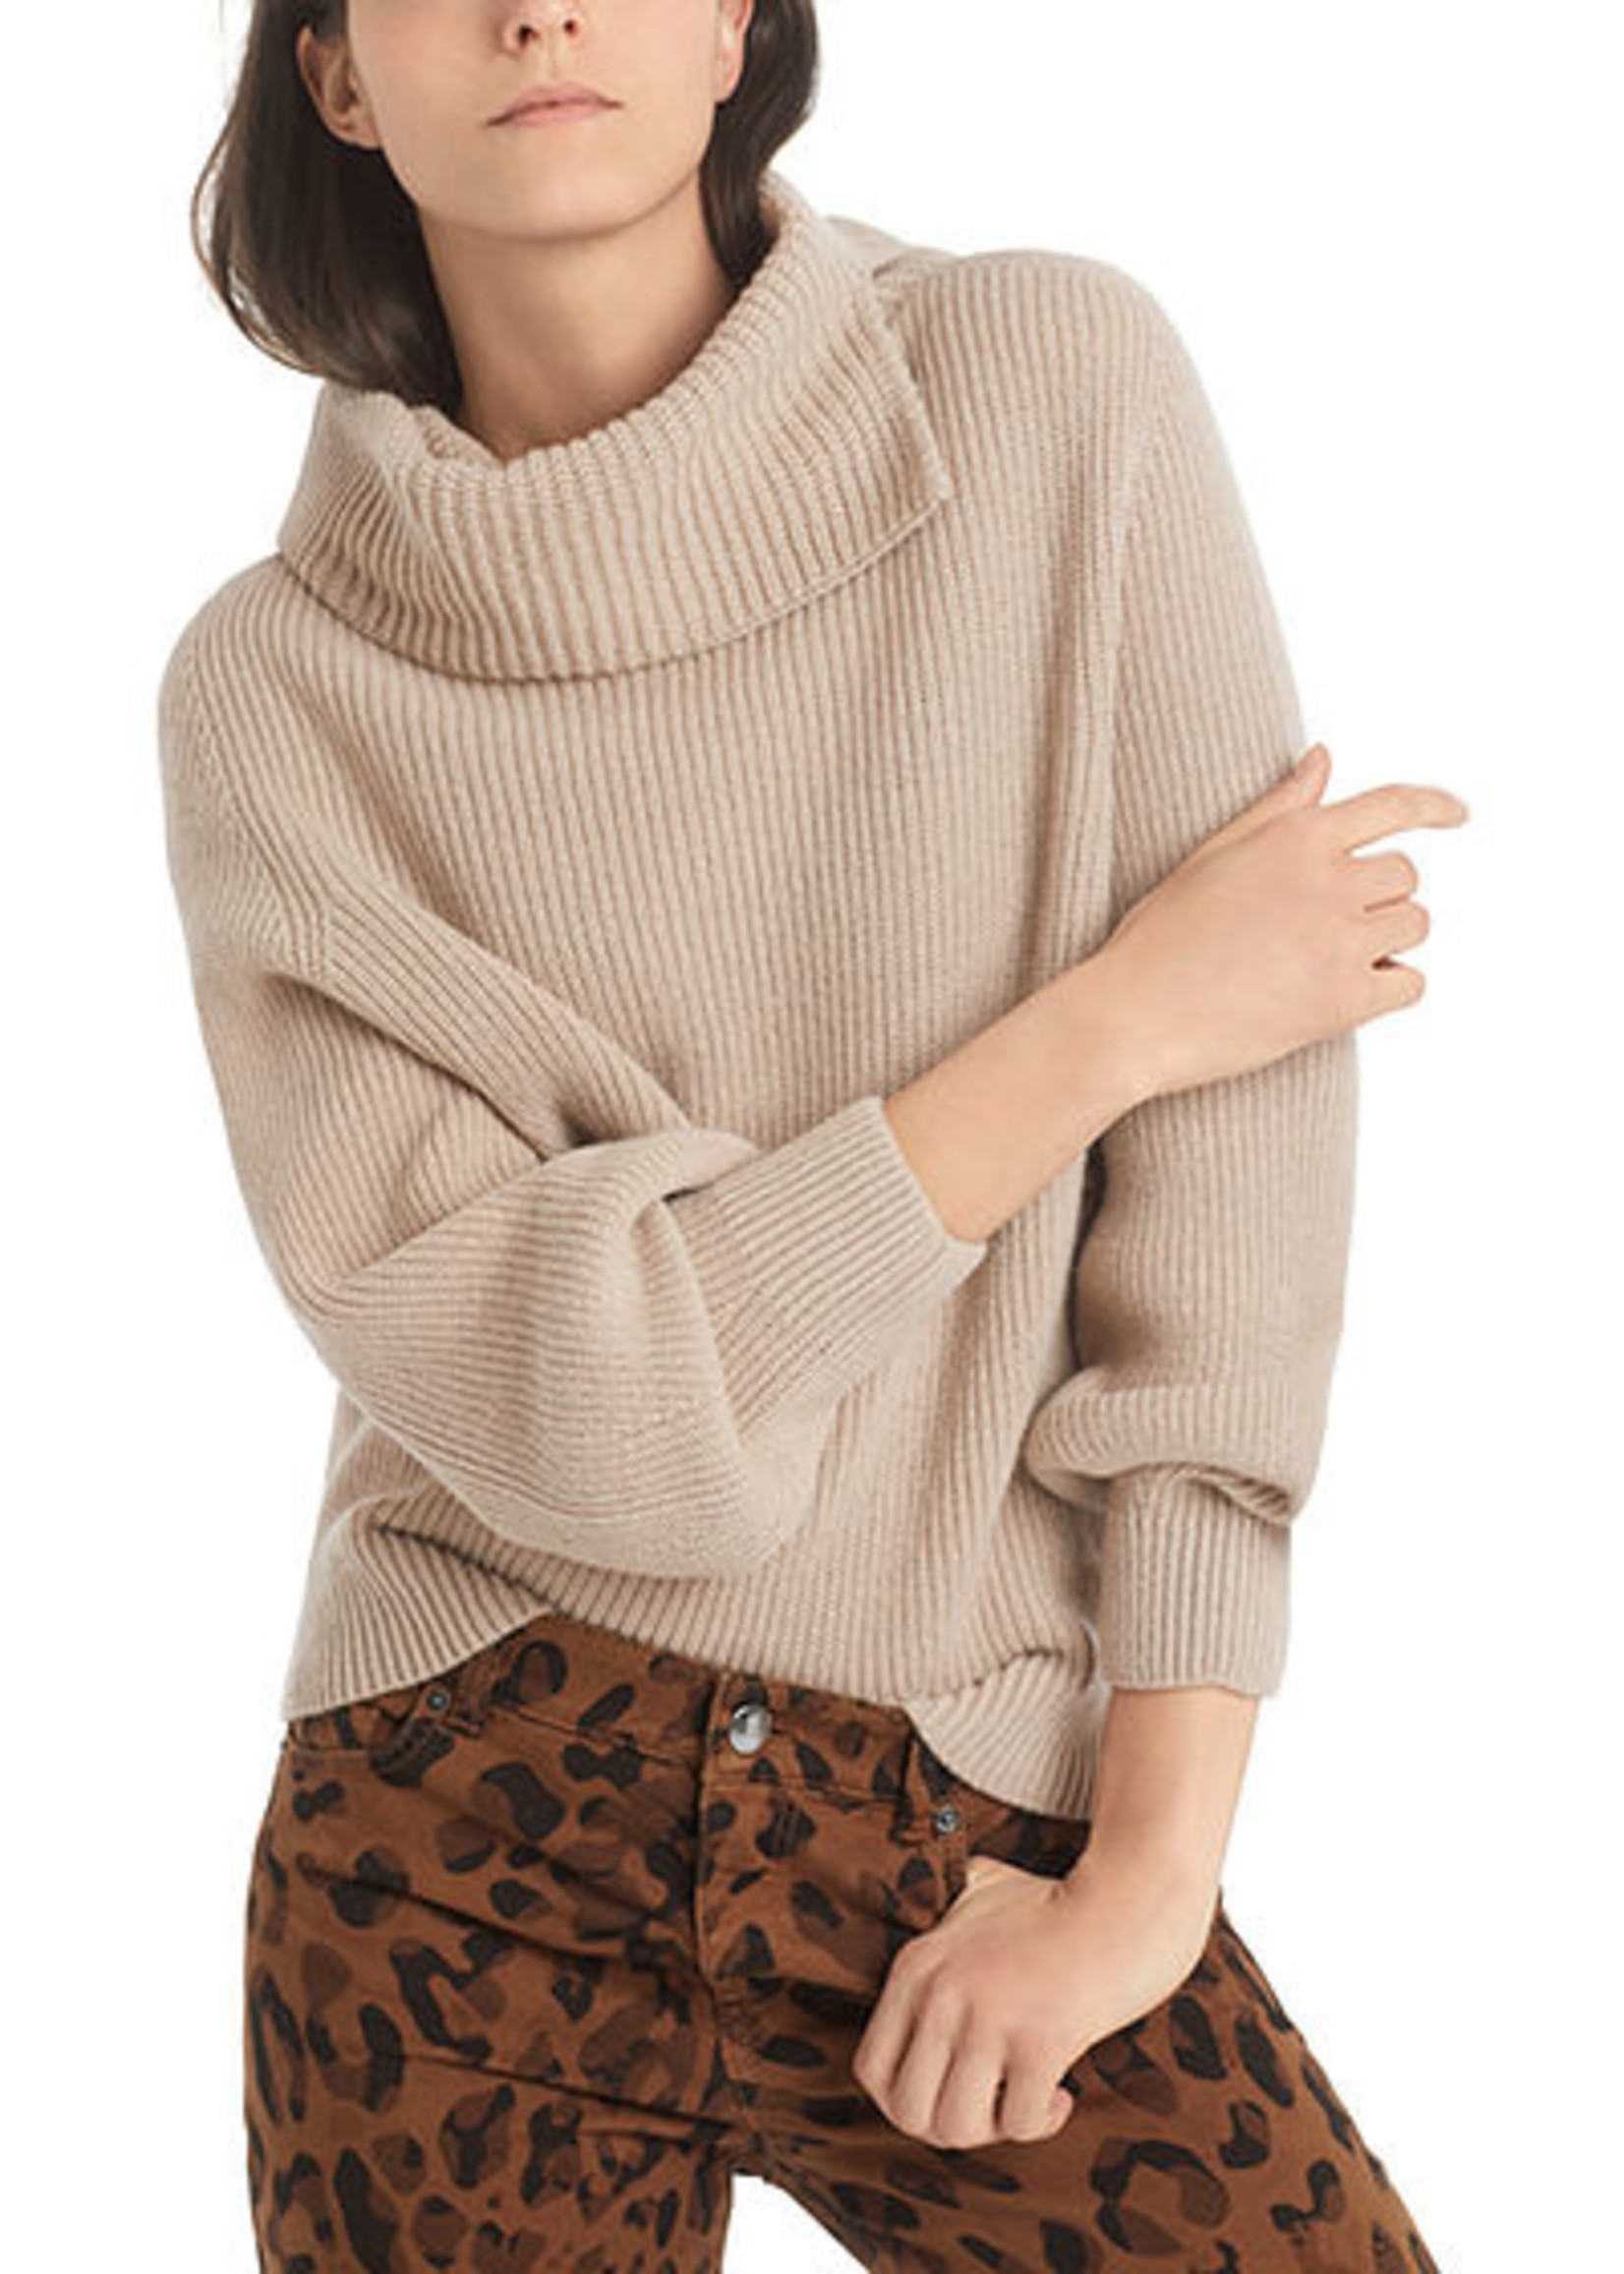 Marccain Sports Sweater RS 41.36 M29 light stone